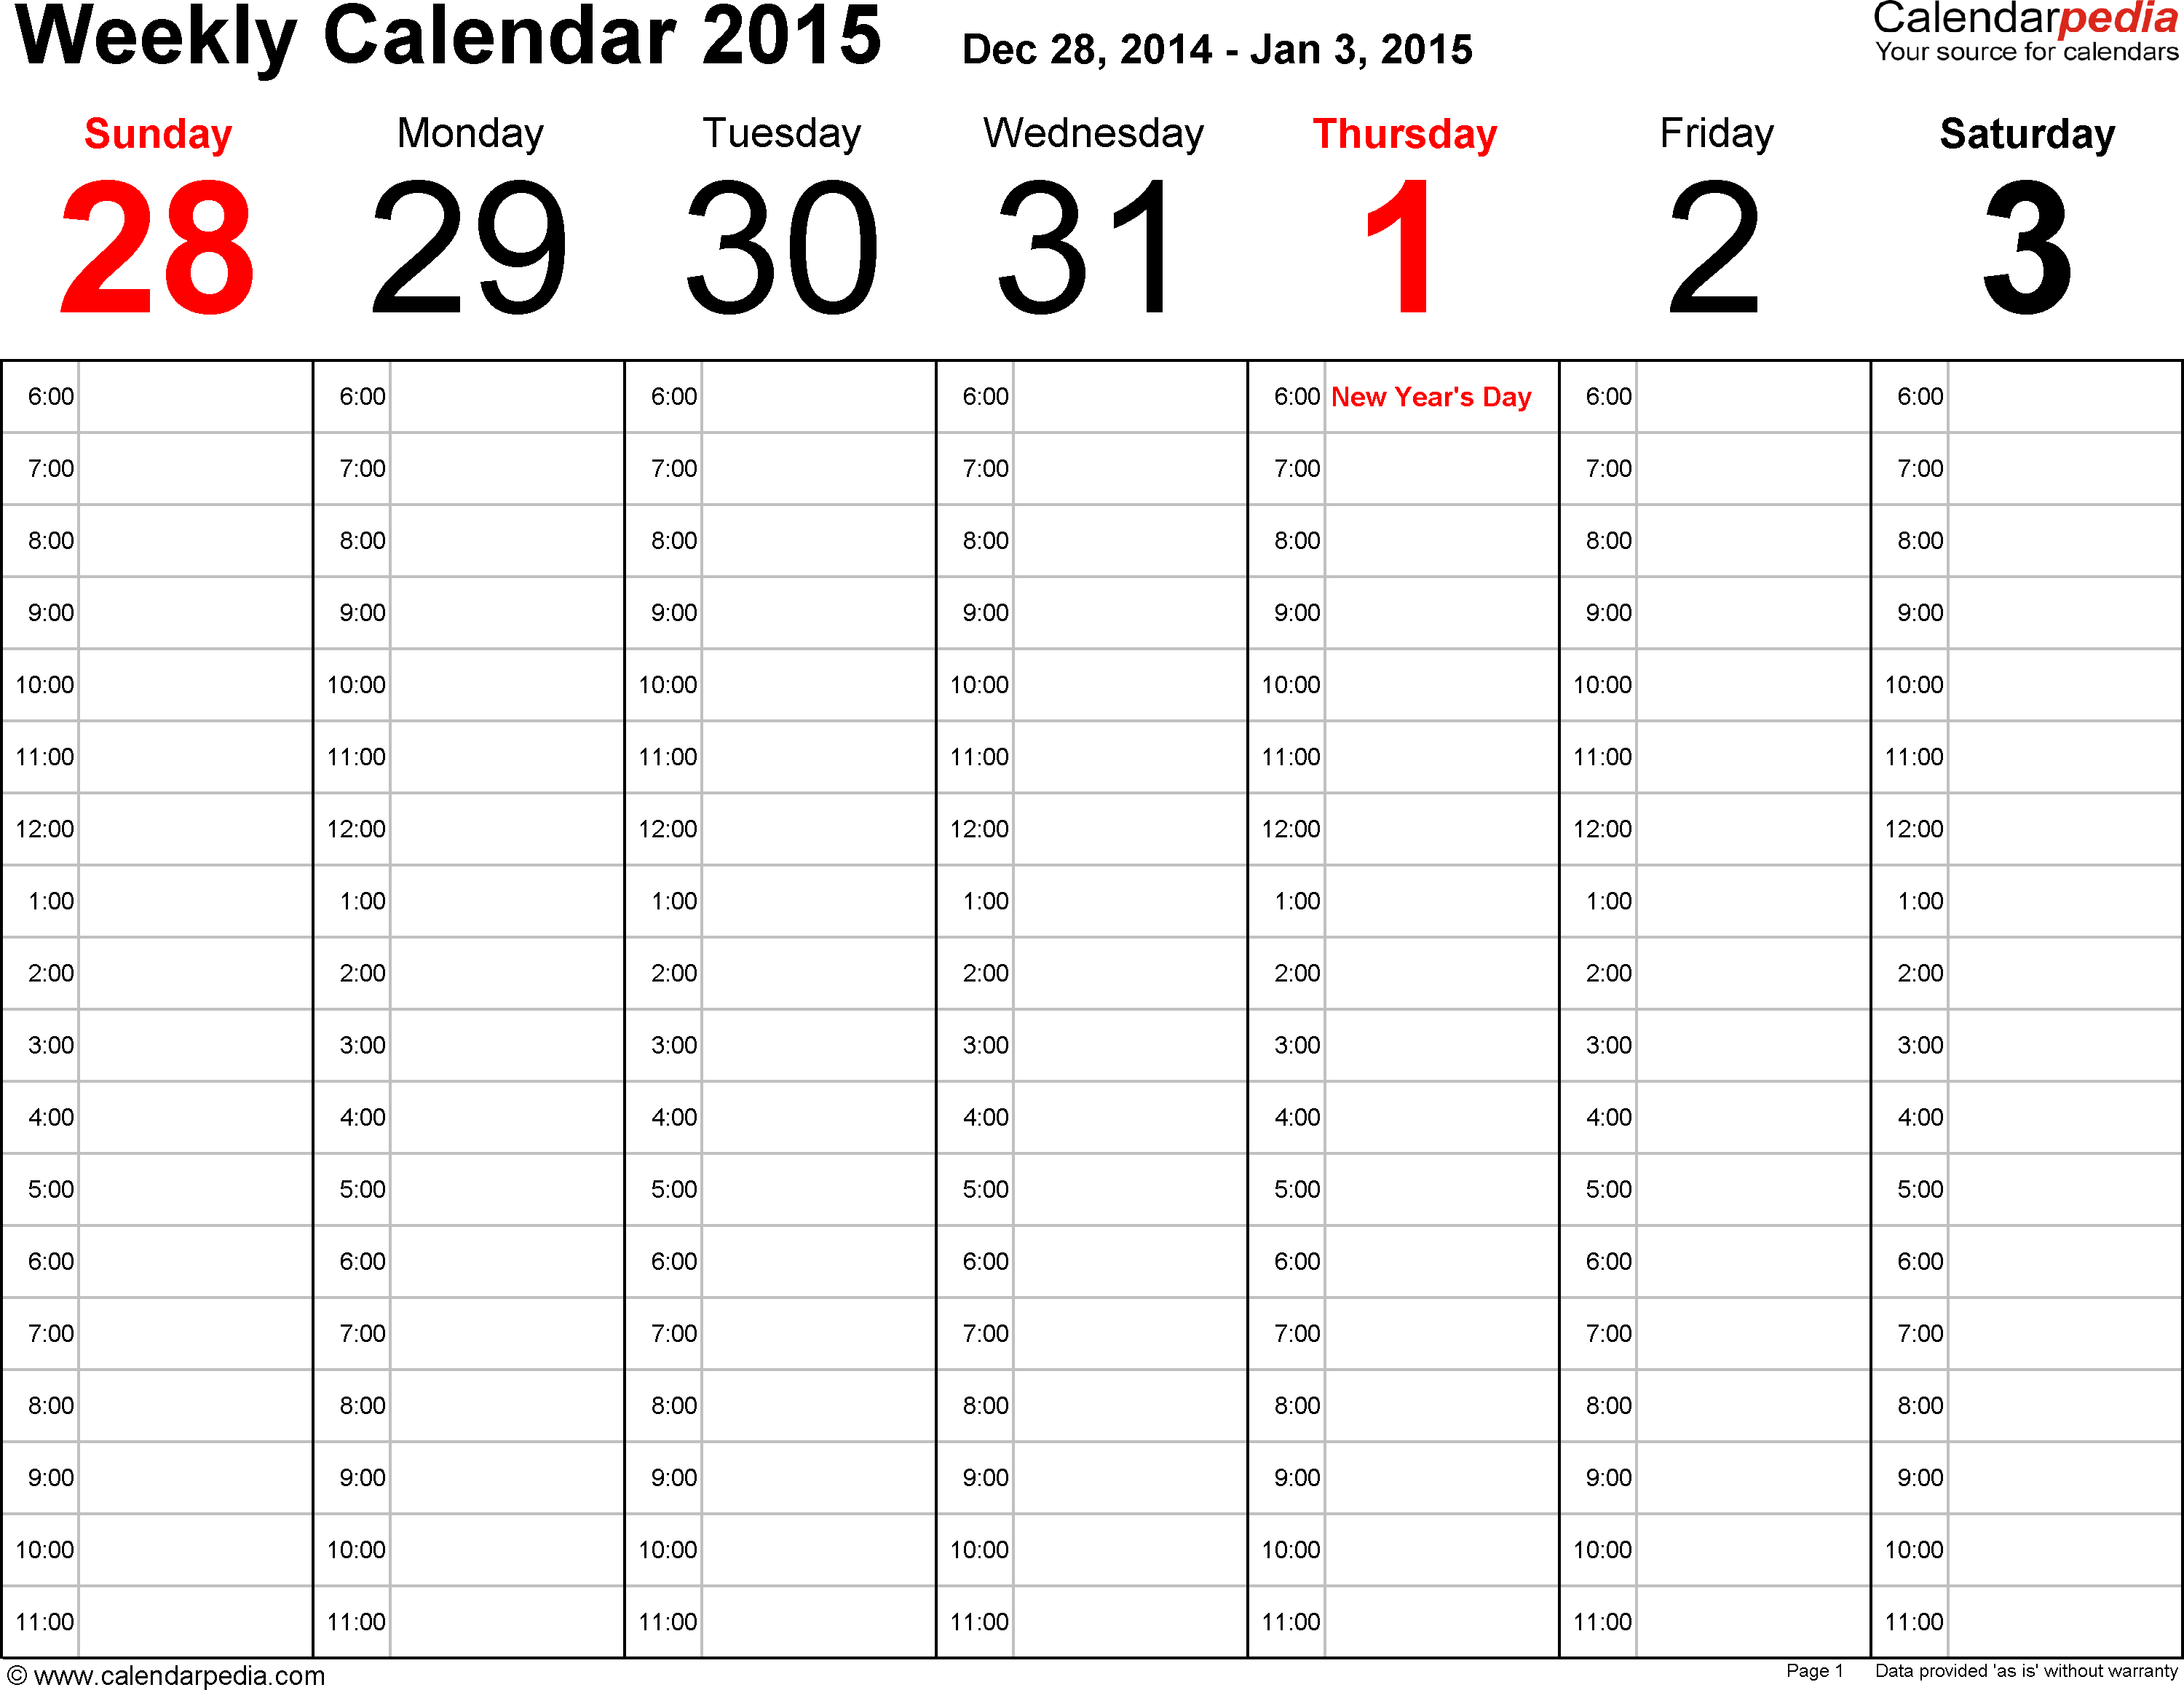 weekly calendar 2015 for excel - 12 free printable templates